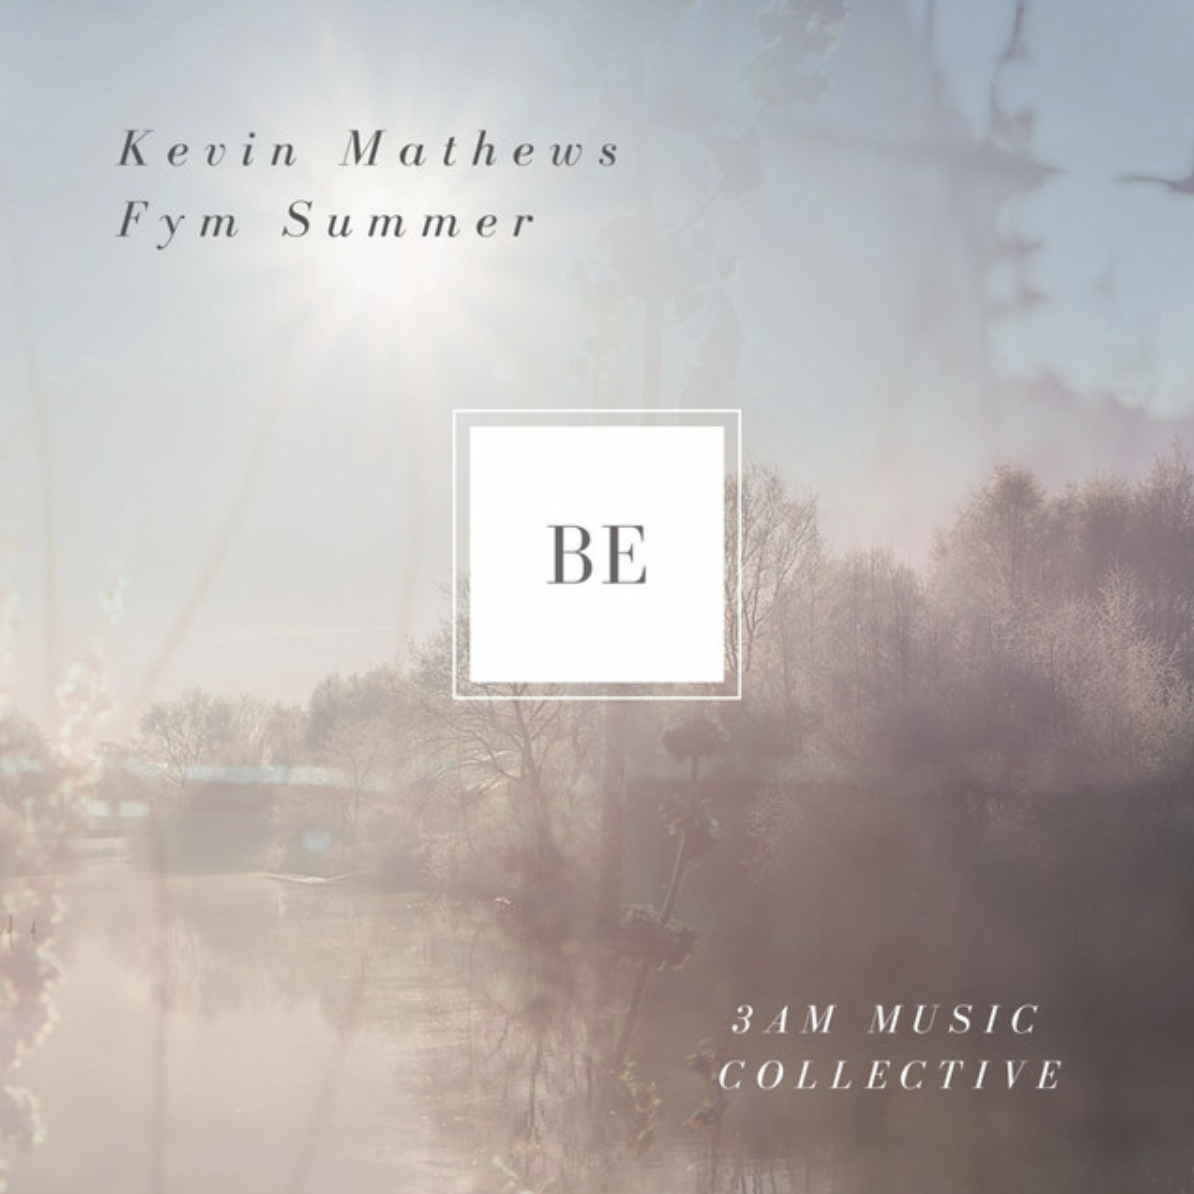 3am music collective  kevin matthews  fym summer